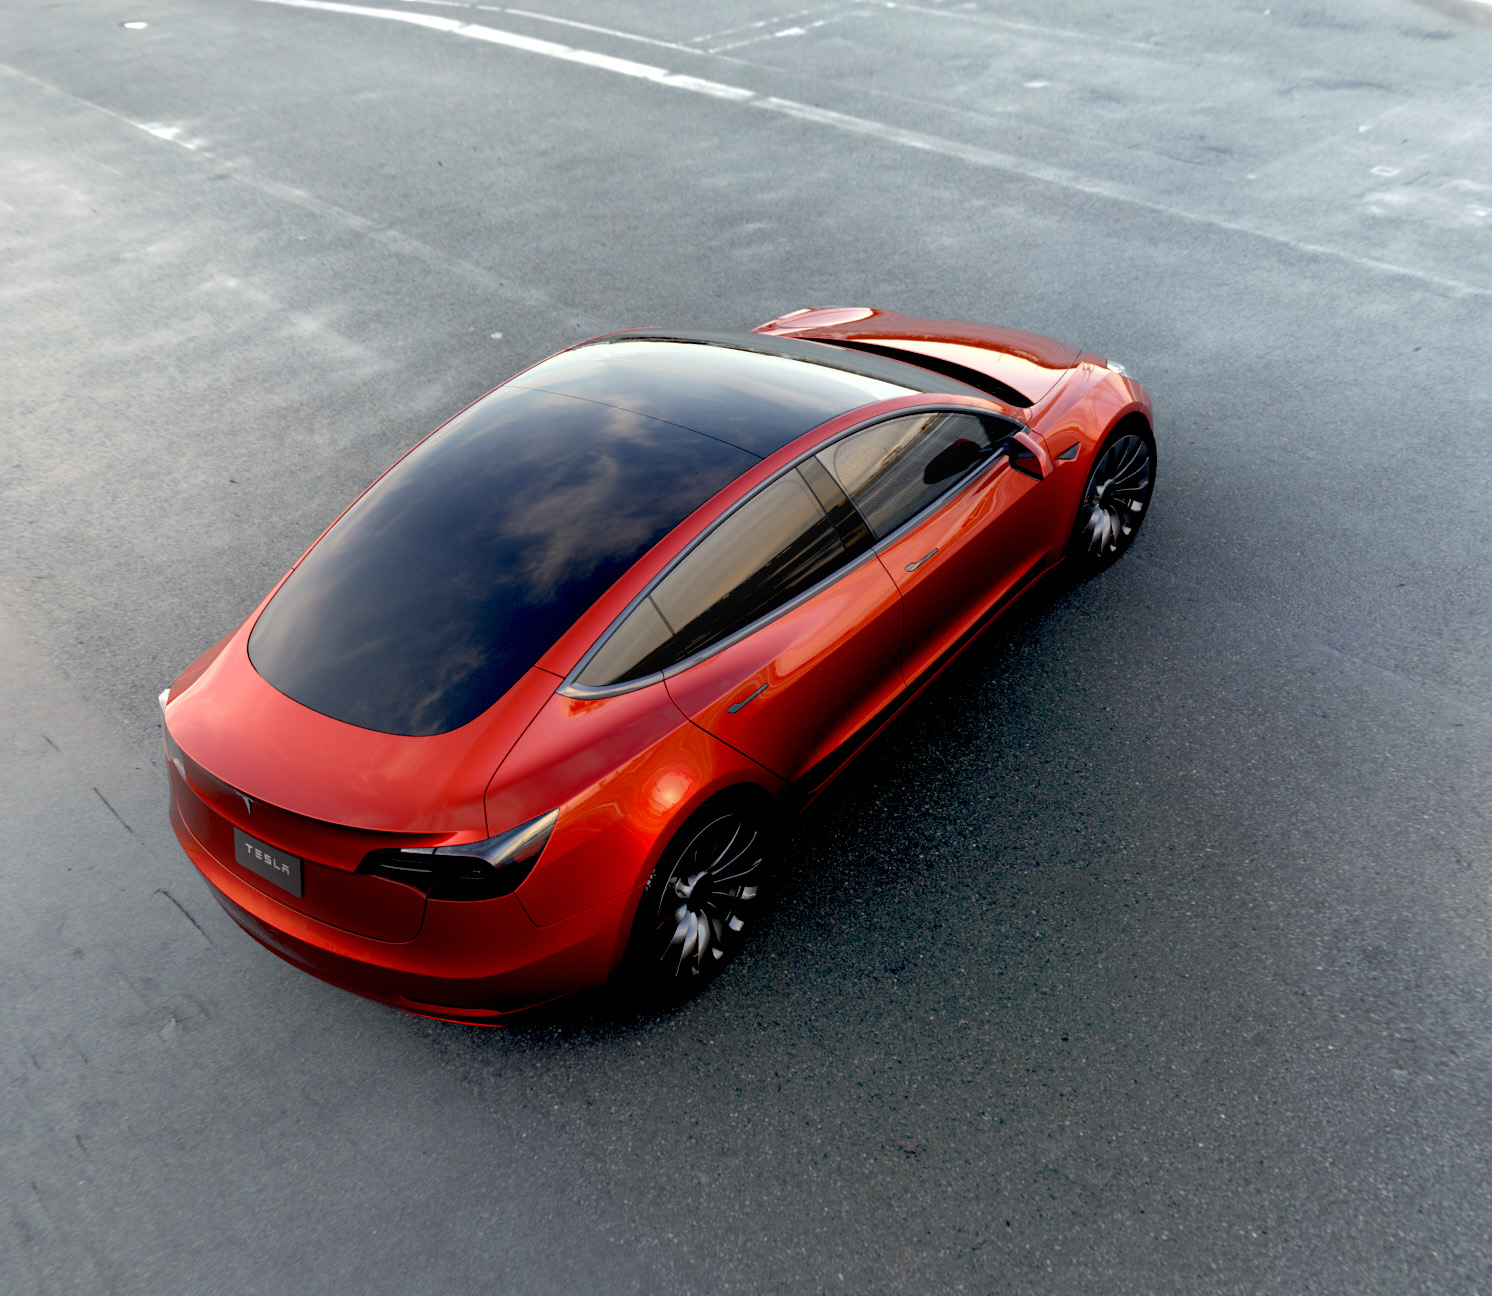 Tesla vehicles ordered after October 15 lose out on full tax credit